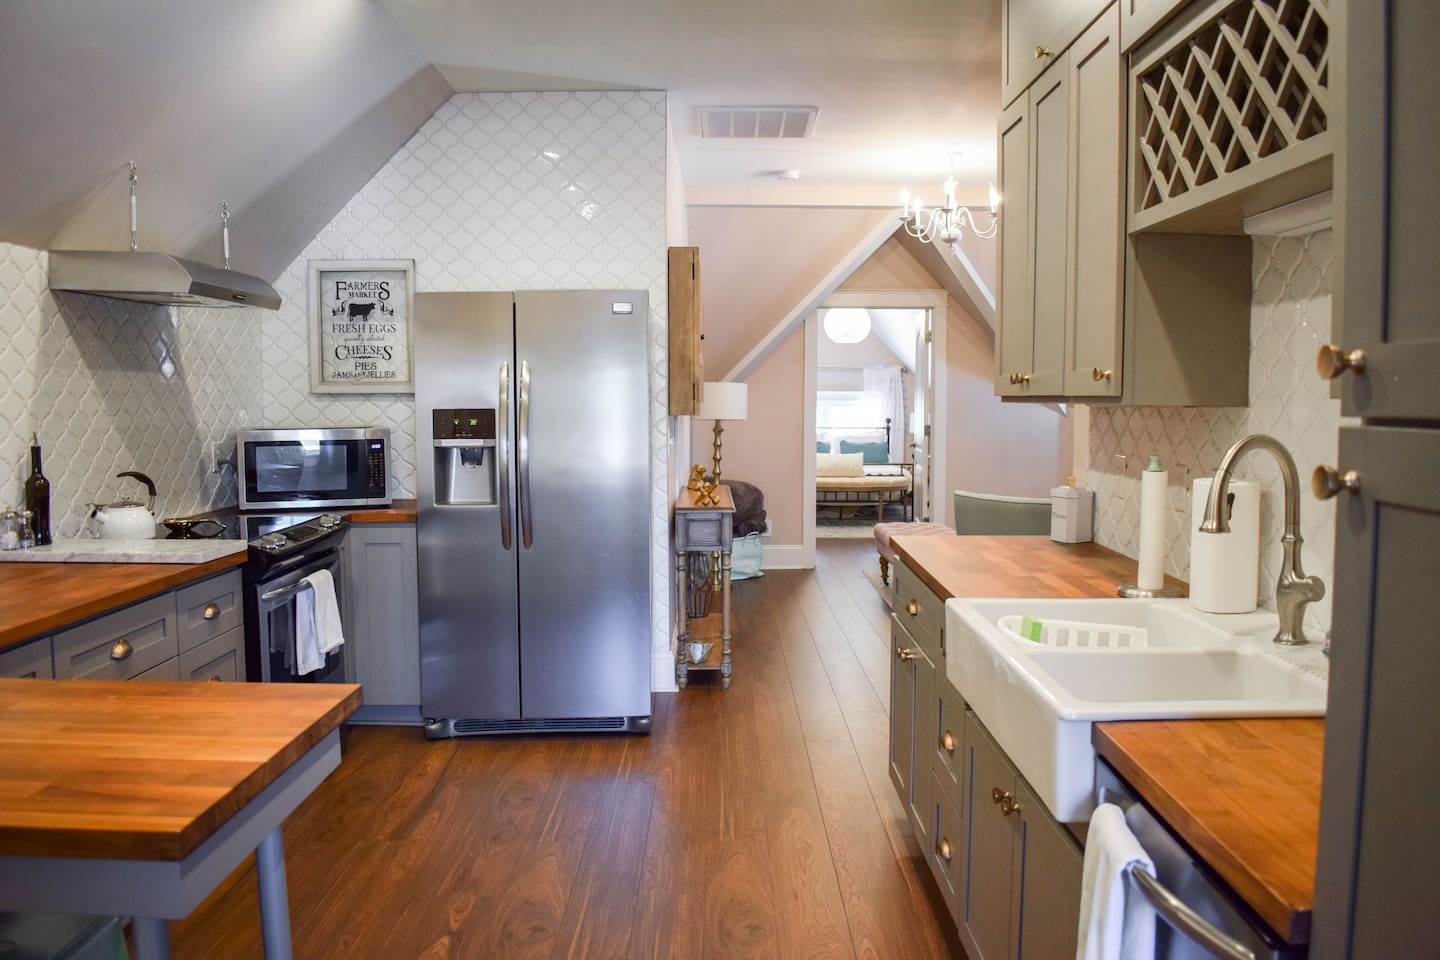 Kitchen with refrigerator, oven, stove, microwave and coffee maker. Pots and pans provided